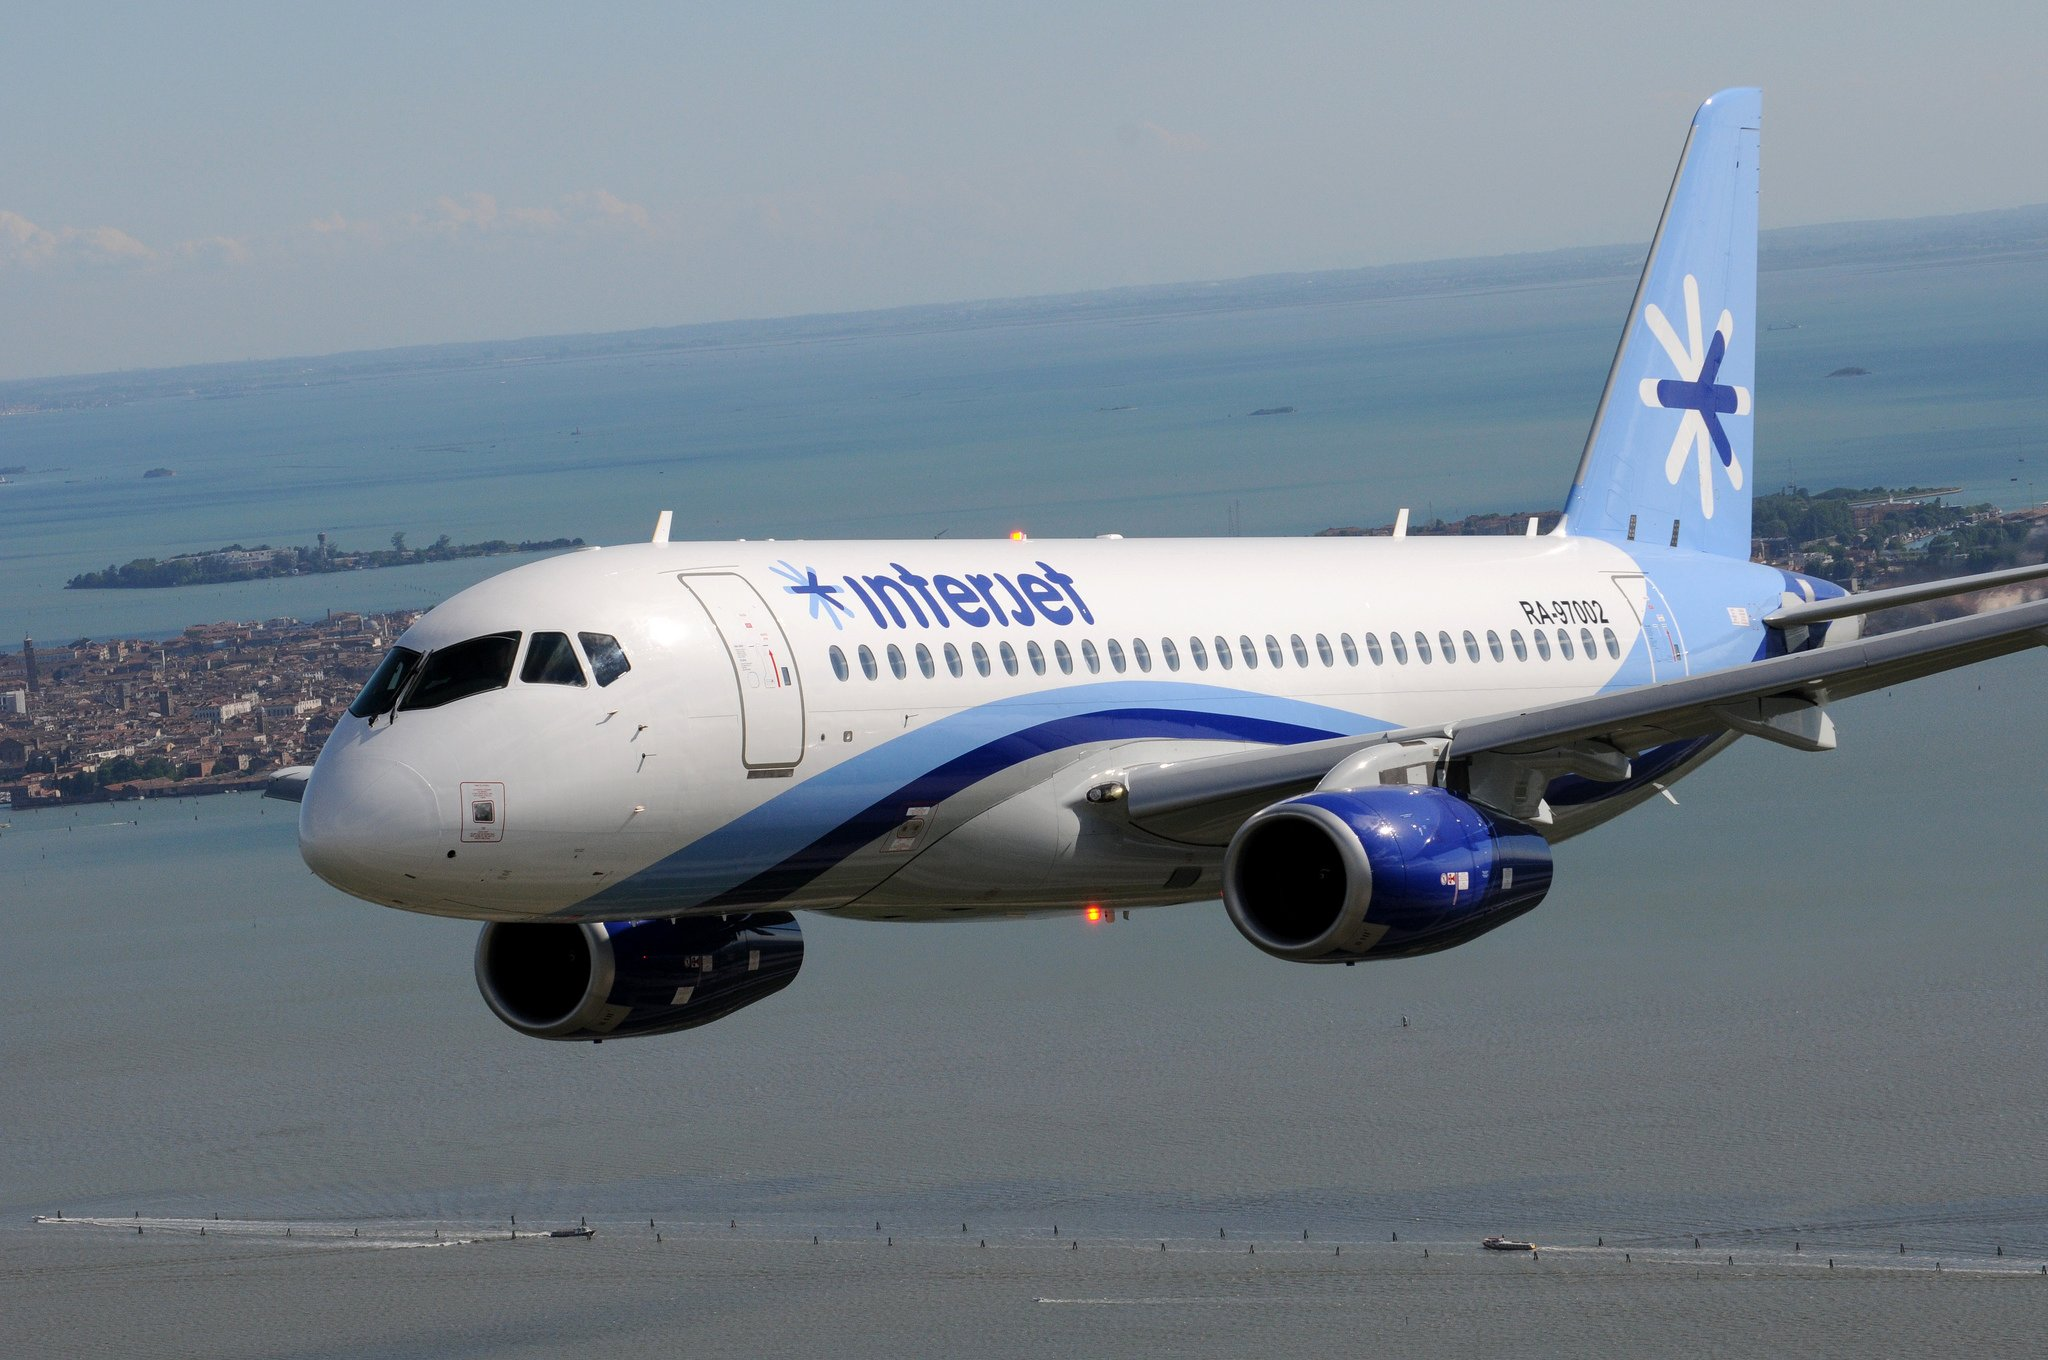 SSJ100 for Interjet par SuperJet International sous (CC BY-SA 2.0) https://www.flickr.com/photos/superjetinternational/9016198170/ https://creativecommons.org/licenses/by-sa/2.0/